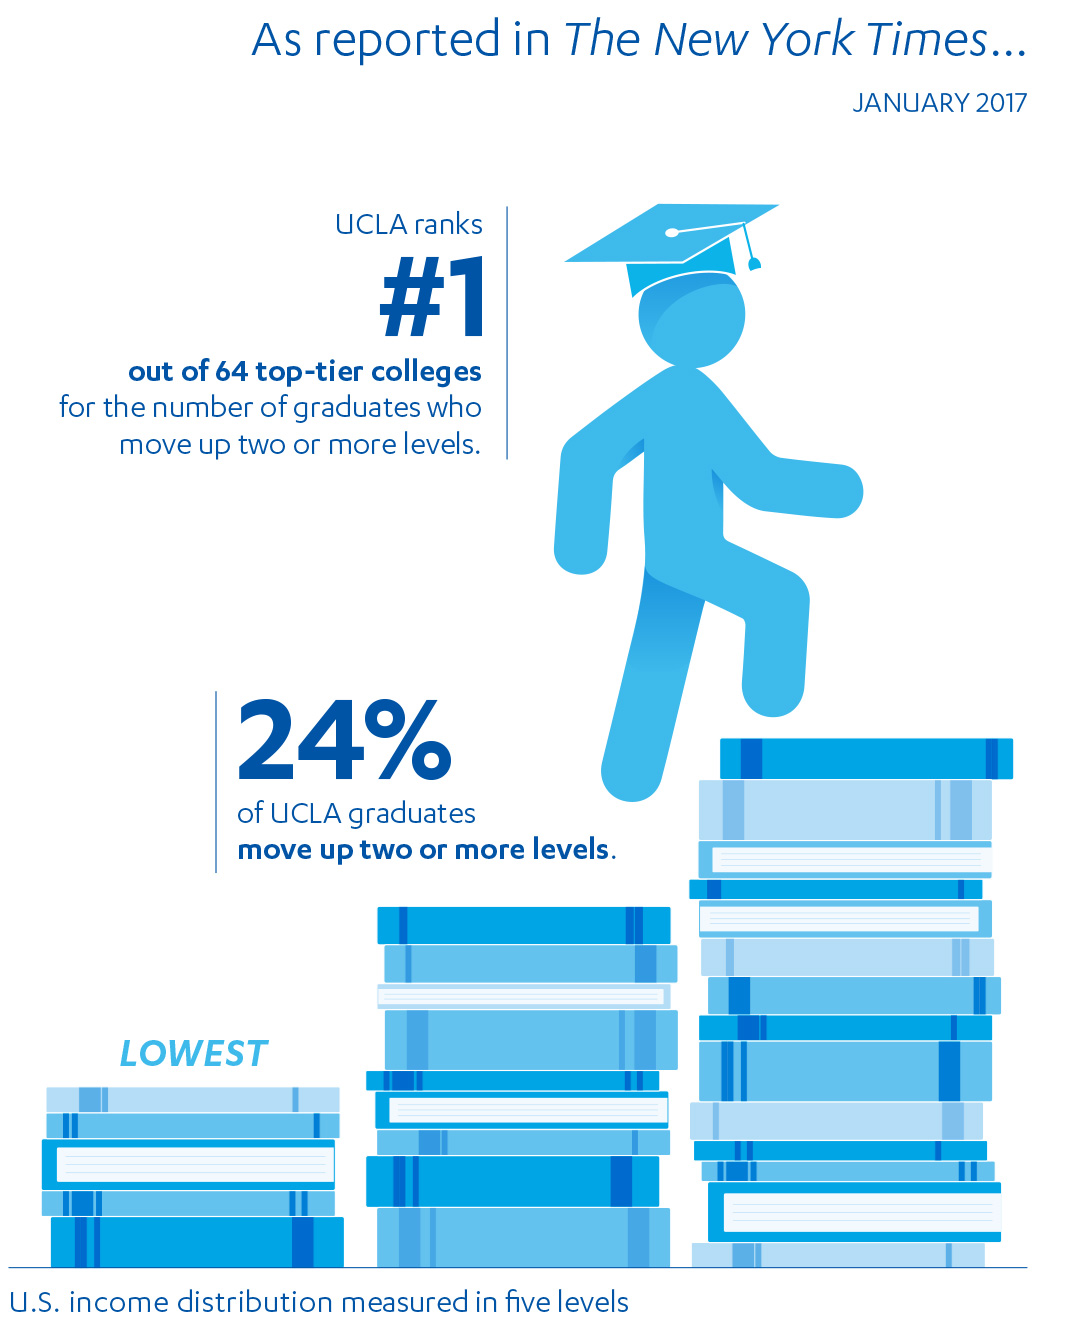 As reported in The New York Times. January 2017. UCLA ranks #1 out of 64 top-tier colleges for the number of graduates who move up two or more levels. 24% of UCLA graduates move up two or more levels.